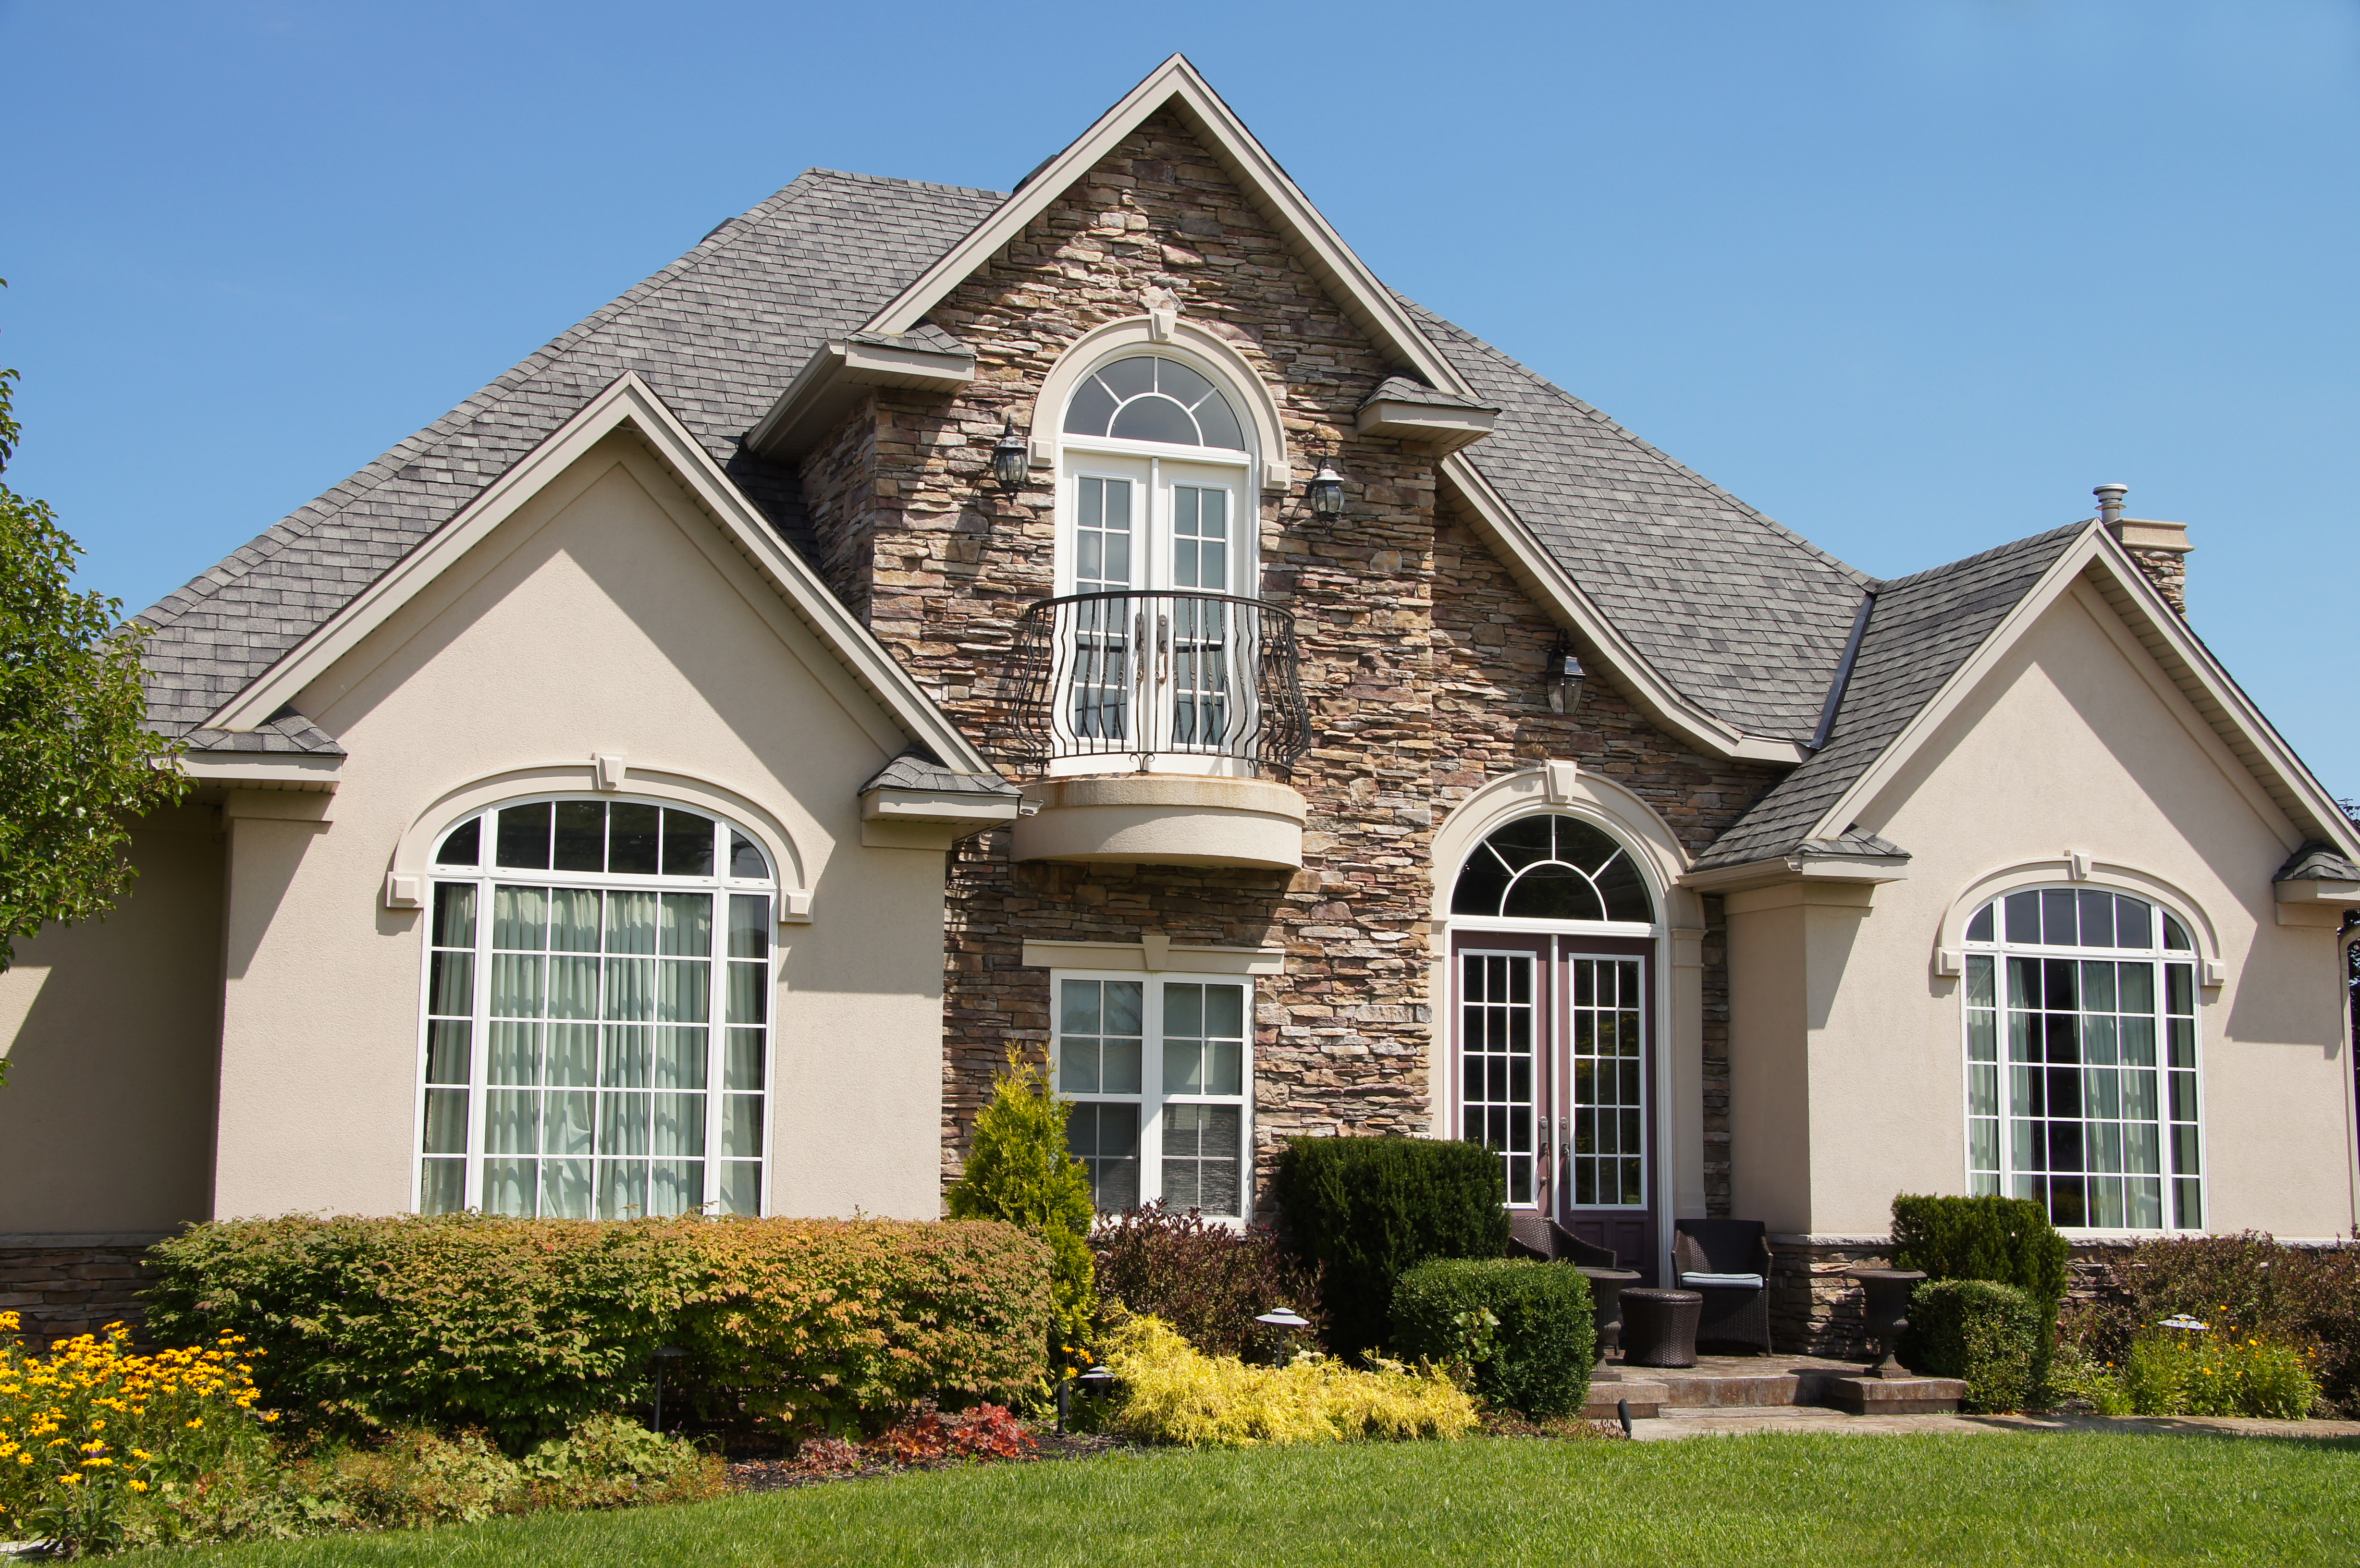 Stucco Maintenance To Help Prepare Your Home For Winter